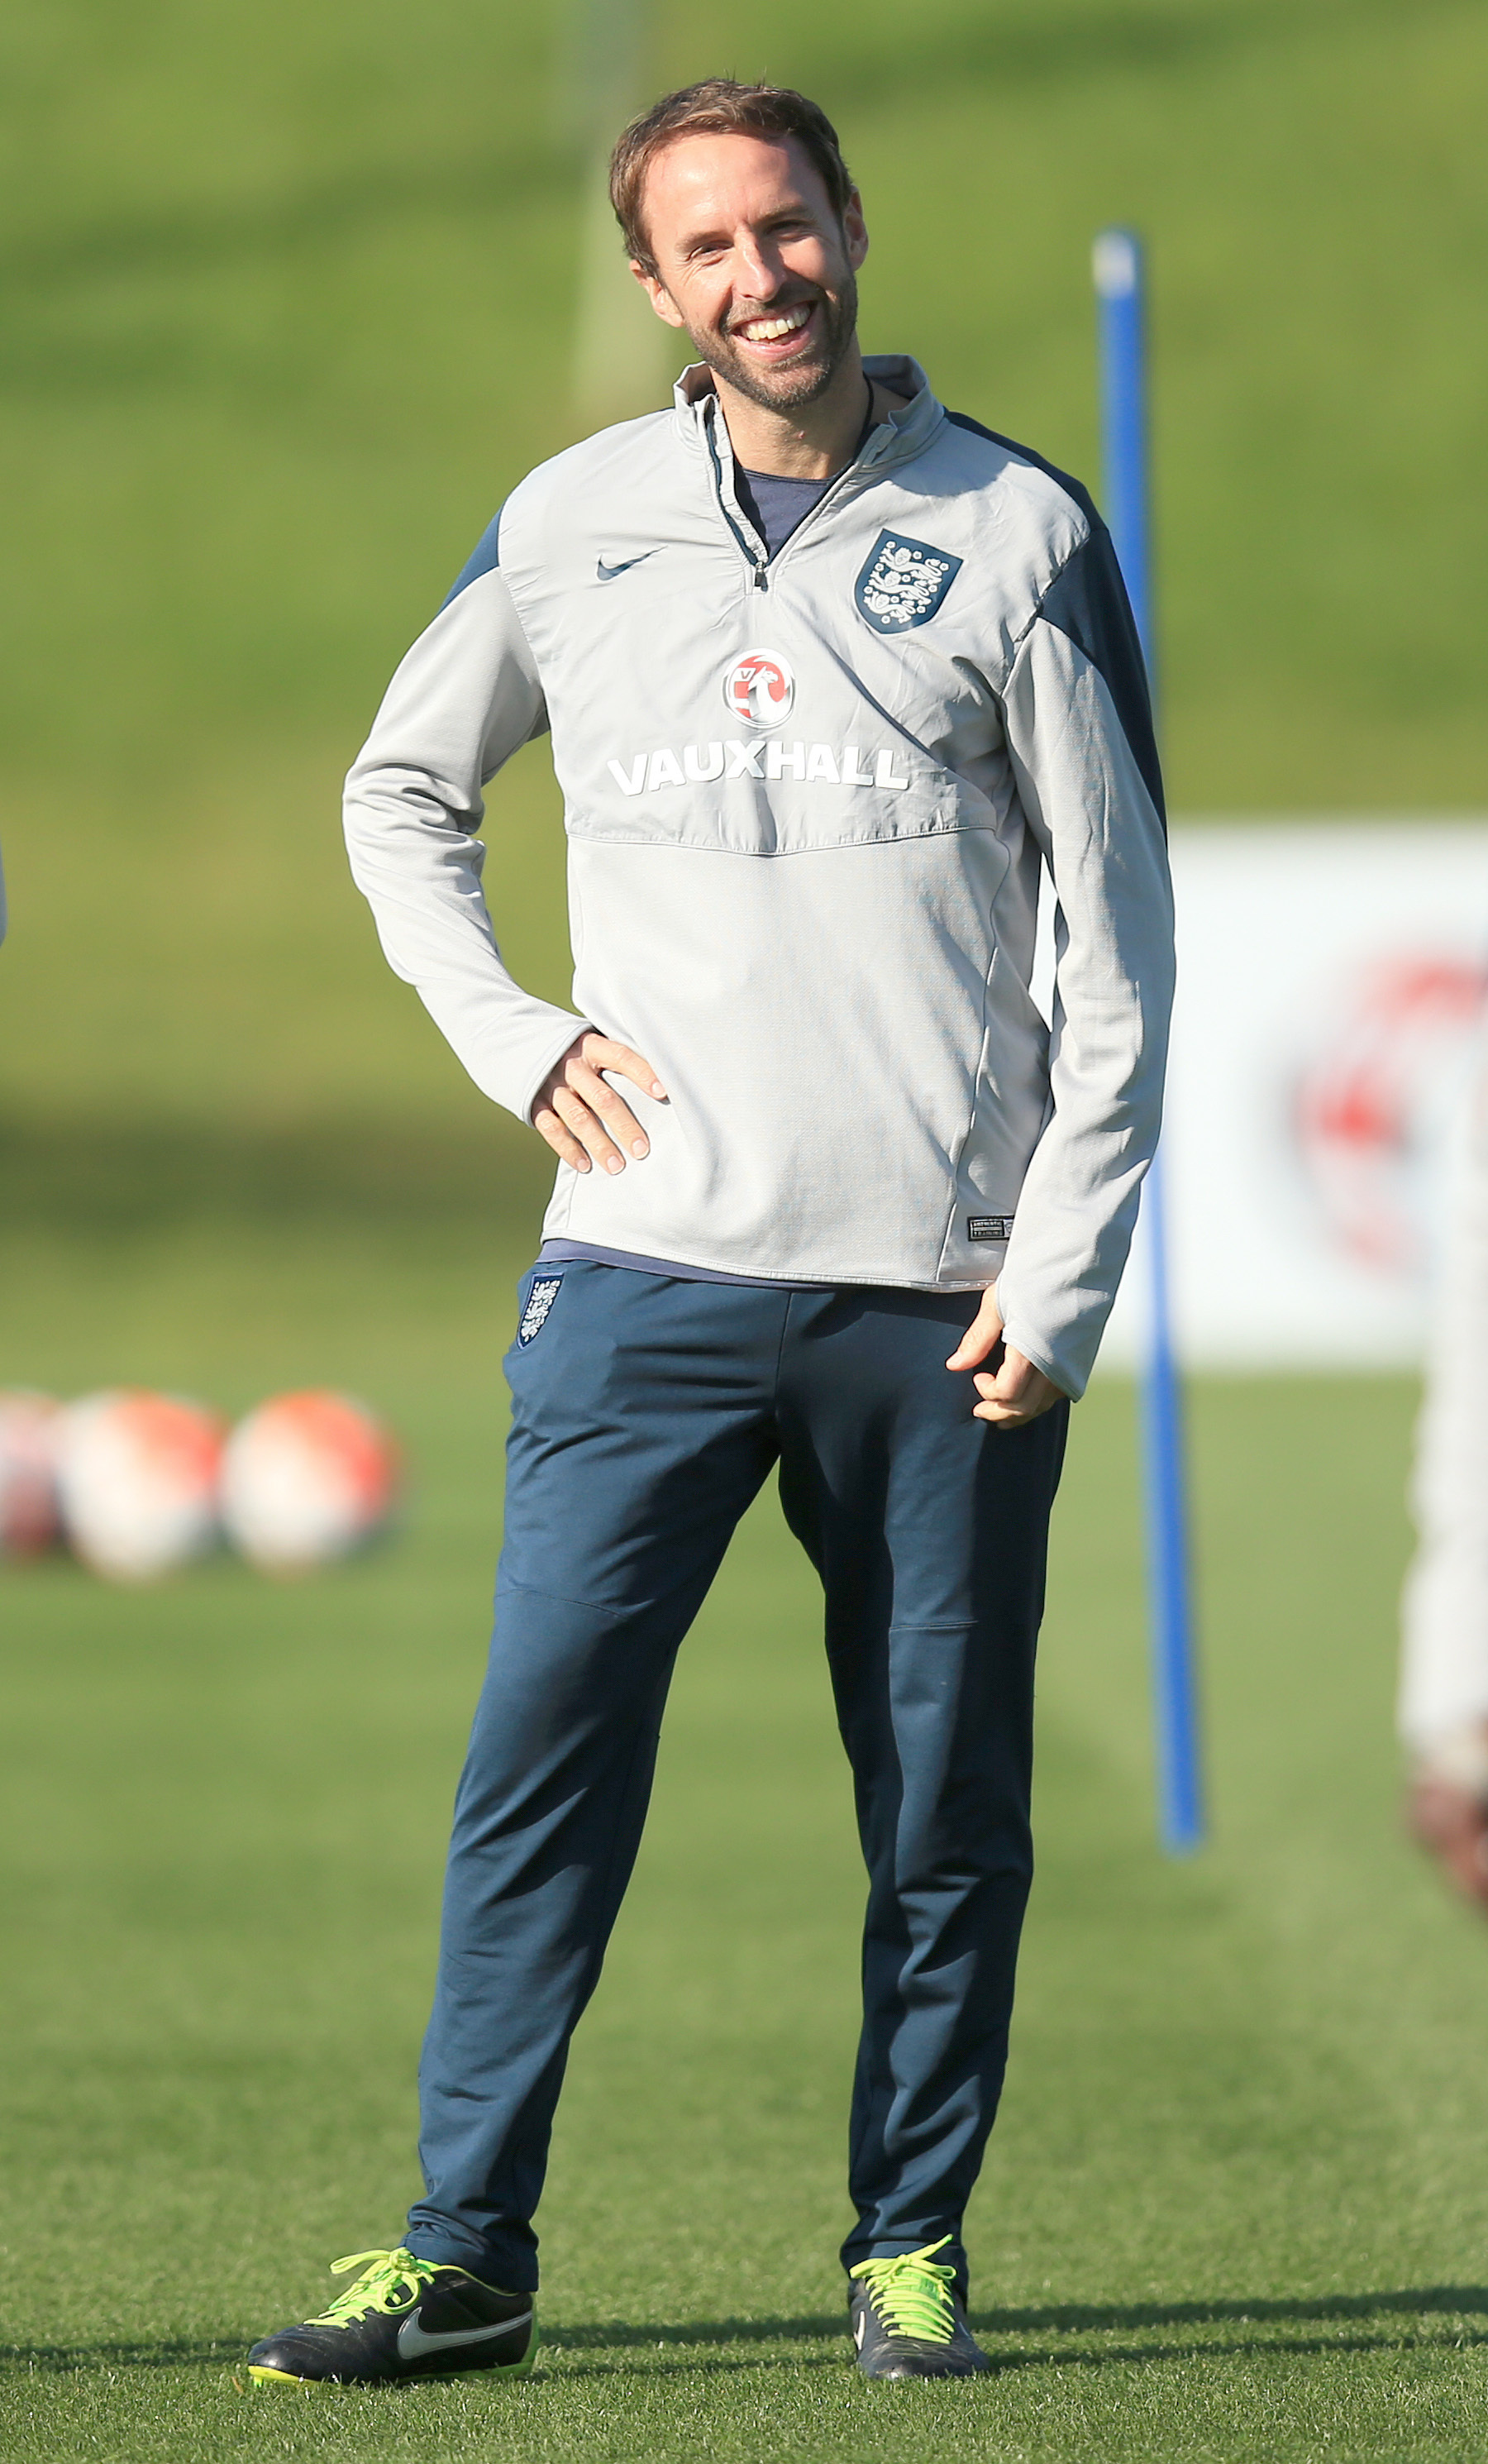 Big chance: Gareth Southgate is set for his England bow